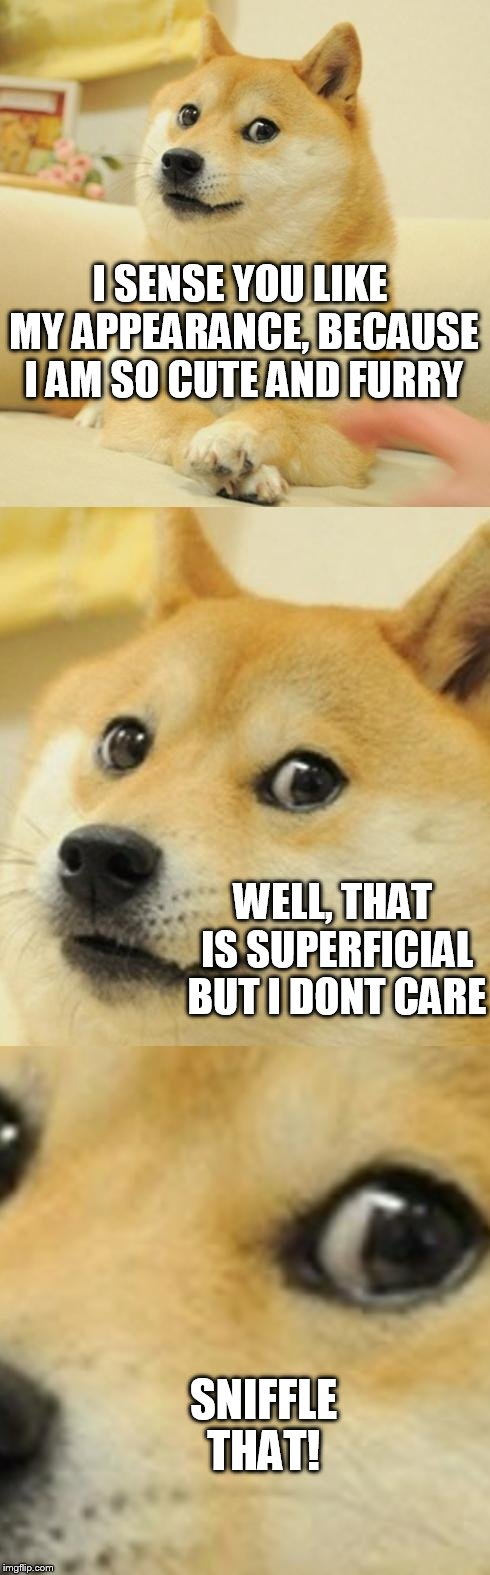 Doge Game |  I SENSE YOU LIKE MY APPEARANCE, BECAUSE I AM SO CUTE AND FURRY; WELL, THAT IS SUPERFICIAL BUT I DONT CARE; SNIFFLE THAT! | image tagged in doge game | made w/ Imgflip meme maker